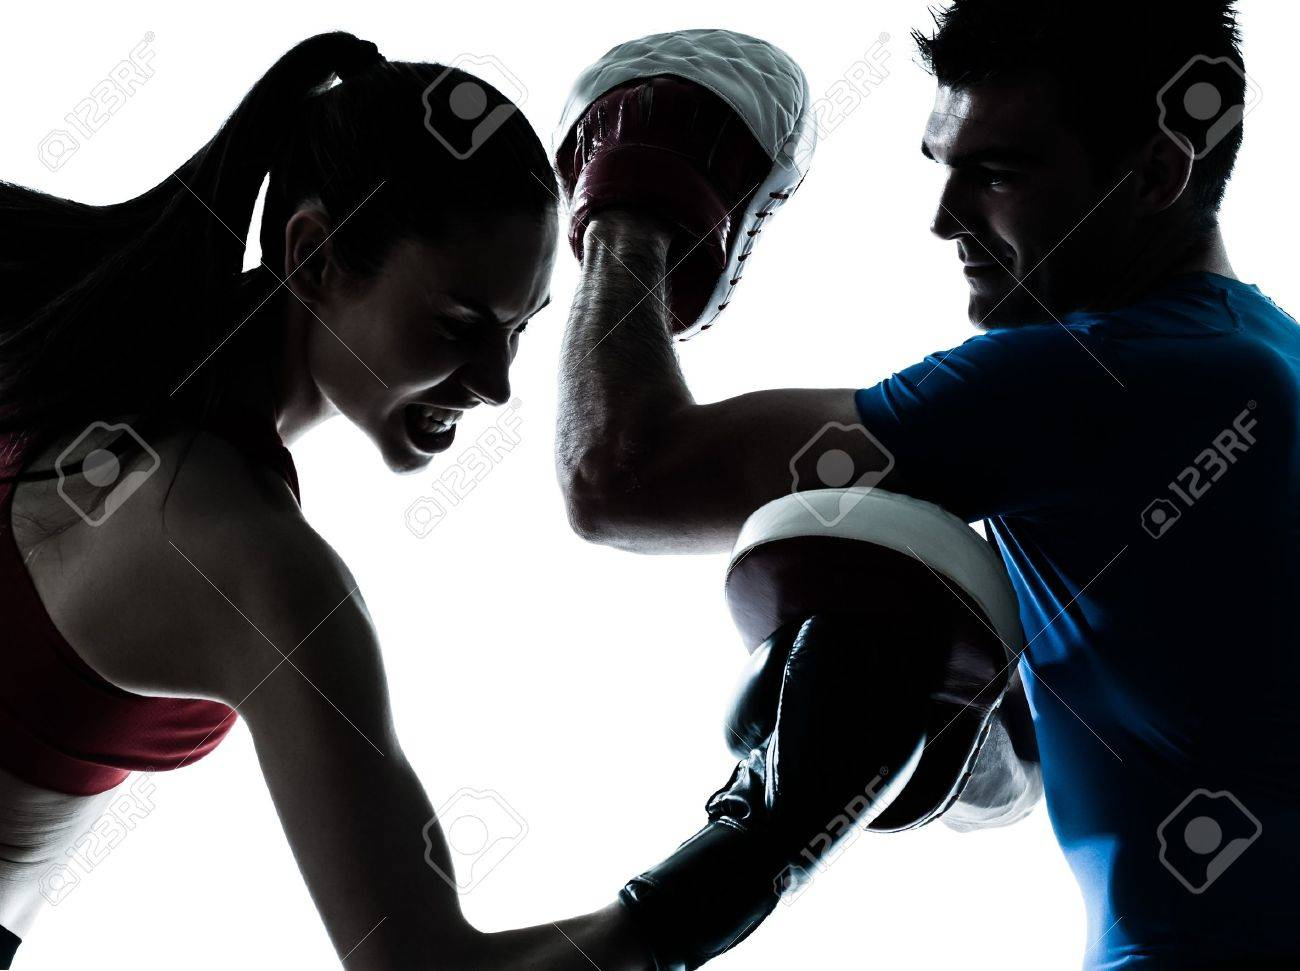 personal trainer man coach and woman exercising boxing silhouette  studio isolated on white background Stock Photo - 15482423